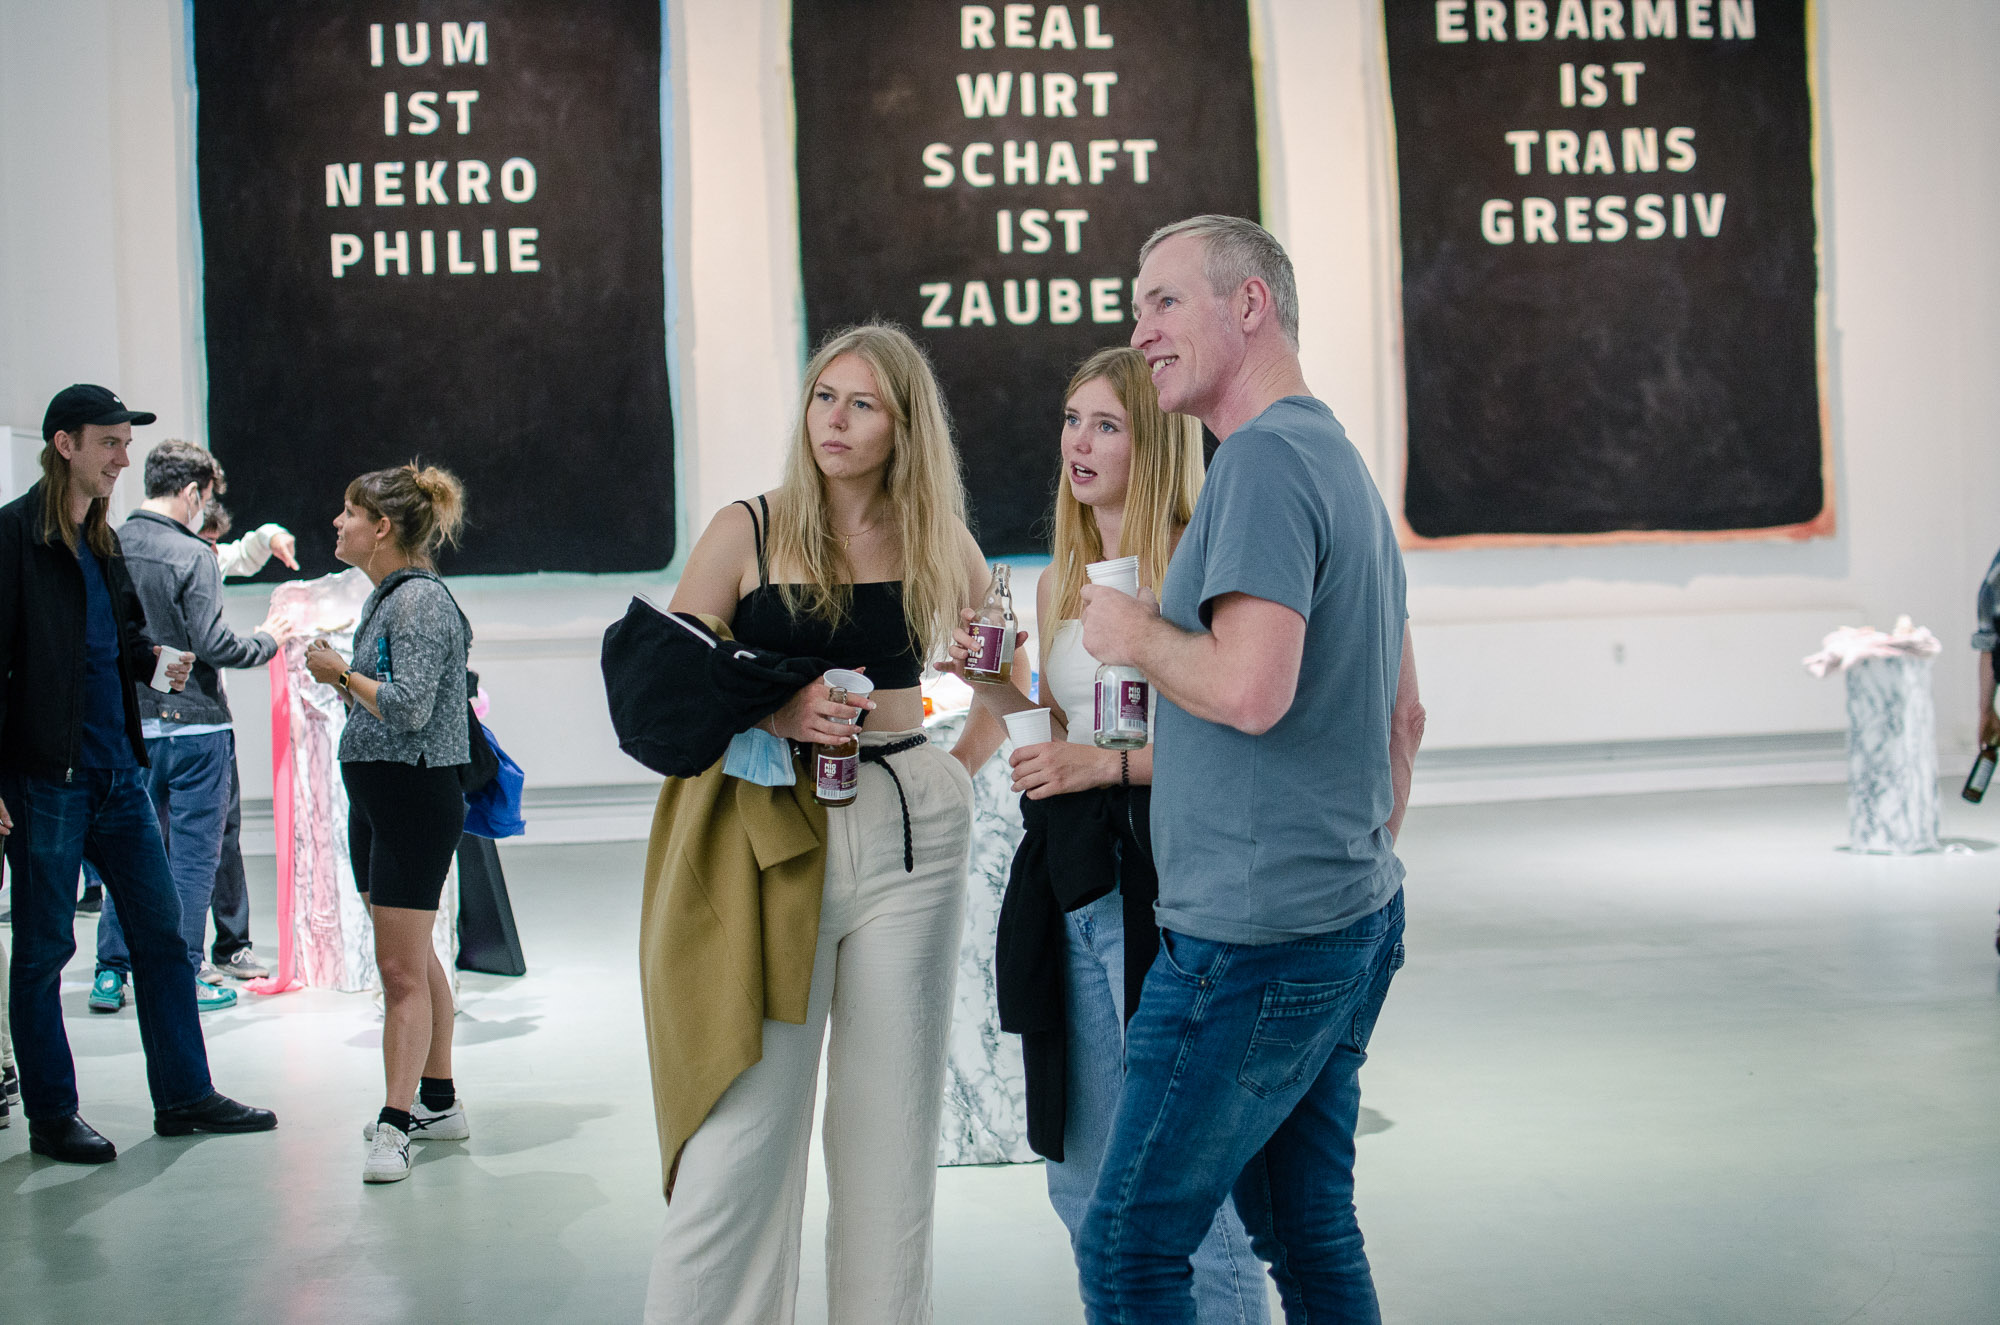 PKRD-48-Airy-Democratic-Spirituality-vernissage-PK-at-Alte-Handlesschule-20.08.21-Fanni-Papp-for-PK-23